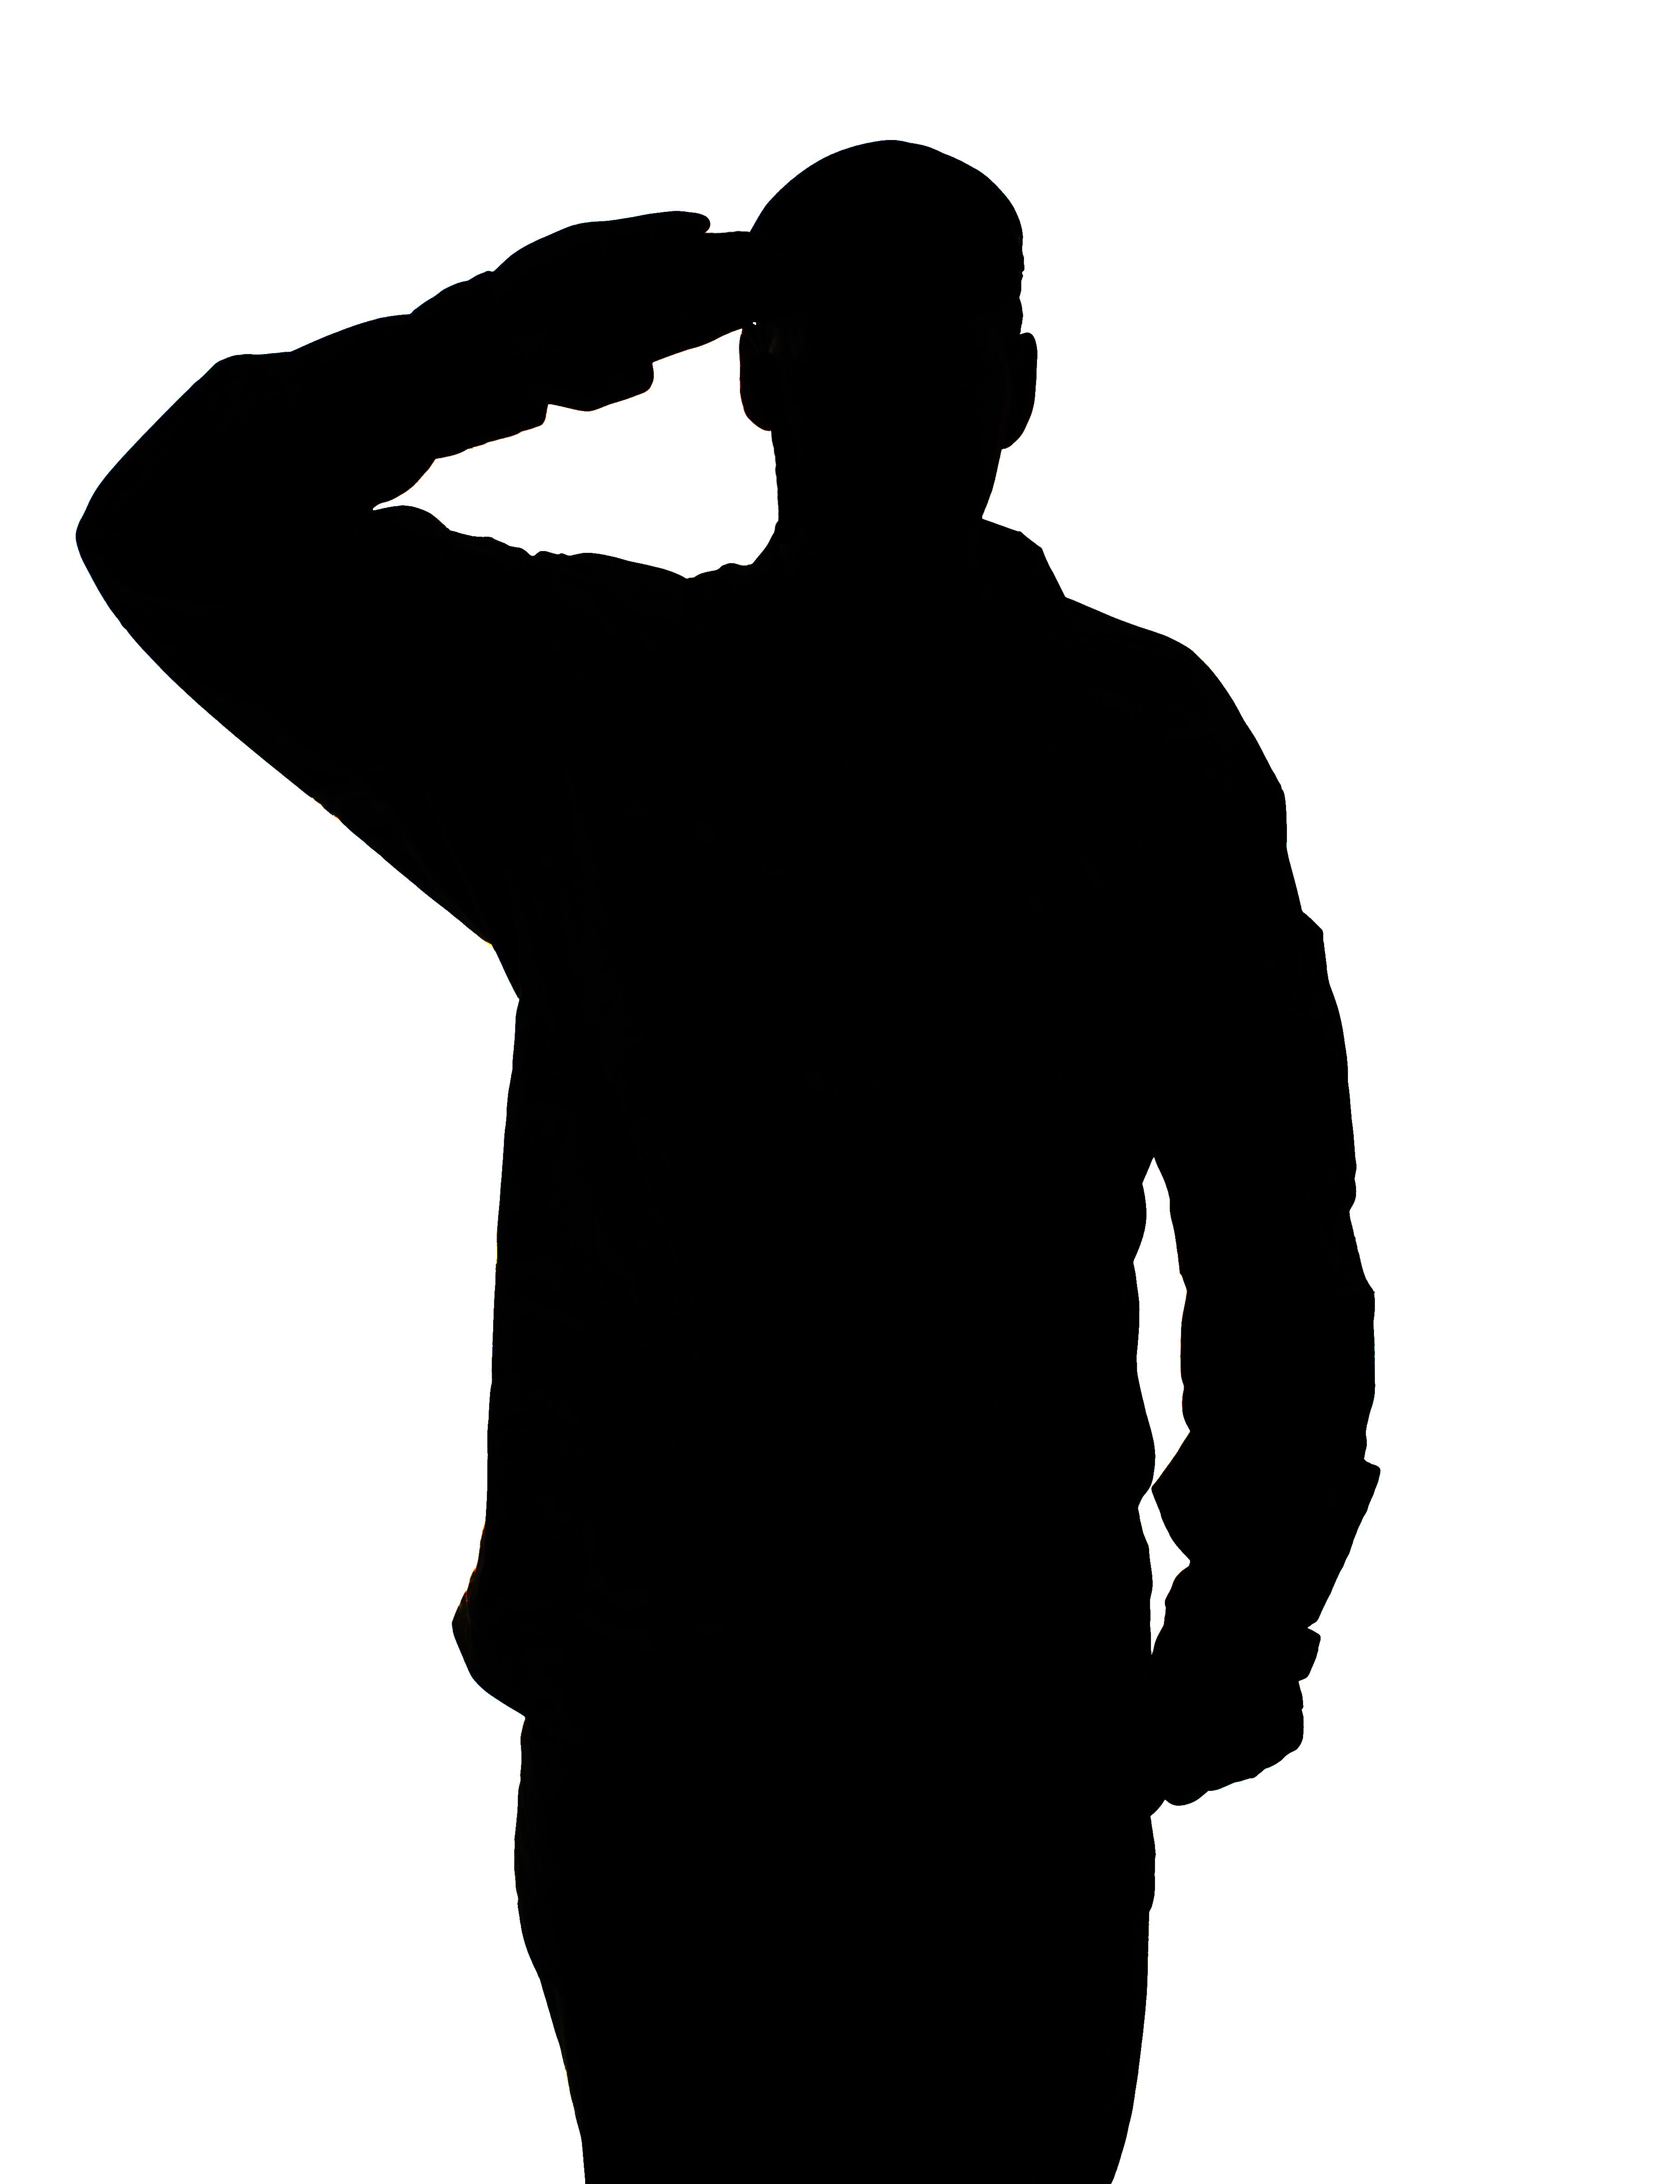 This Picture Shows Patriotism Because It Has A Soldier Saluting On It And The Salute Is A Well Know Symbol For Patri Soldier Silhouette Army Images Silhouette